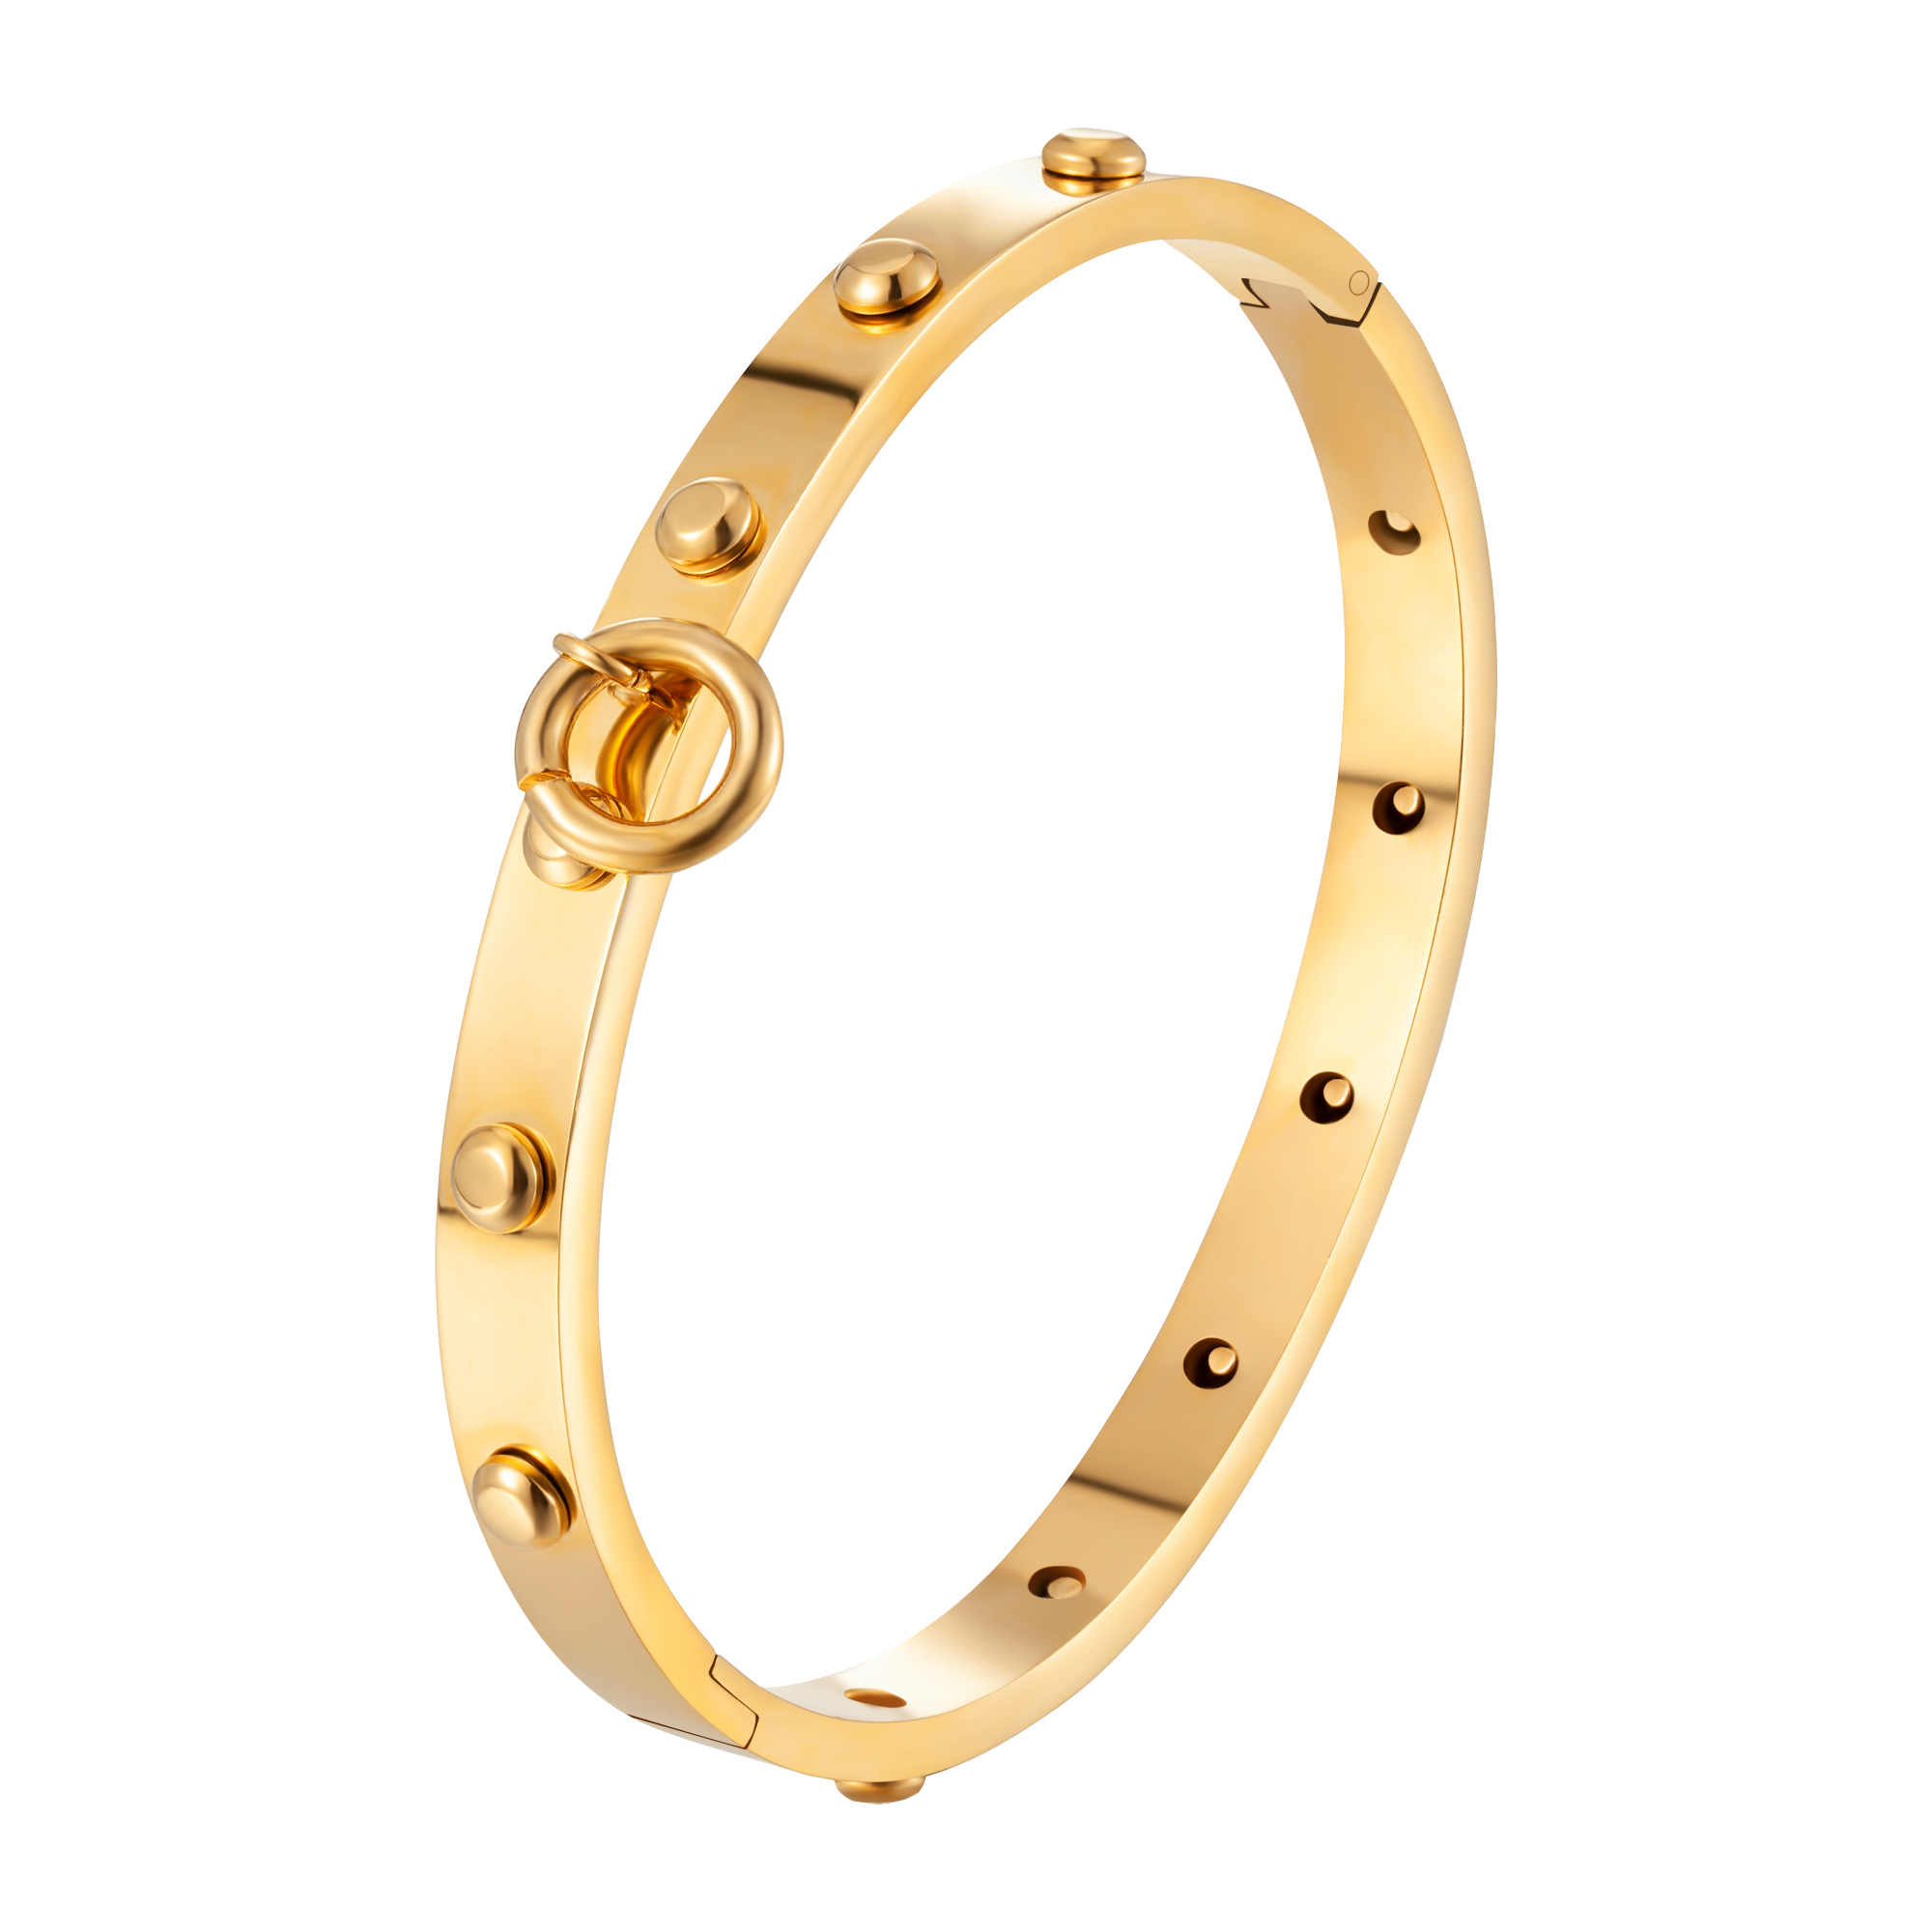 Luxury Brand Jewelry Gold Color Rivet Bangle Dangle Circle Bracelet For Women Bracelets Bangles Forever Love Jewelry Gifts